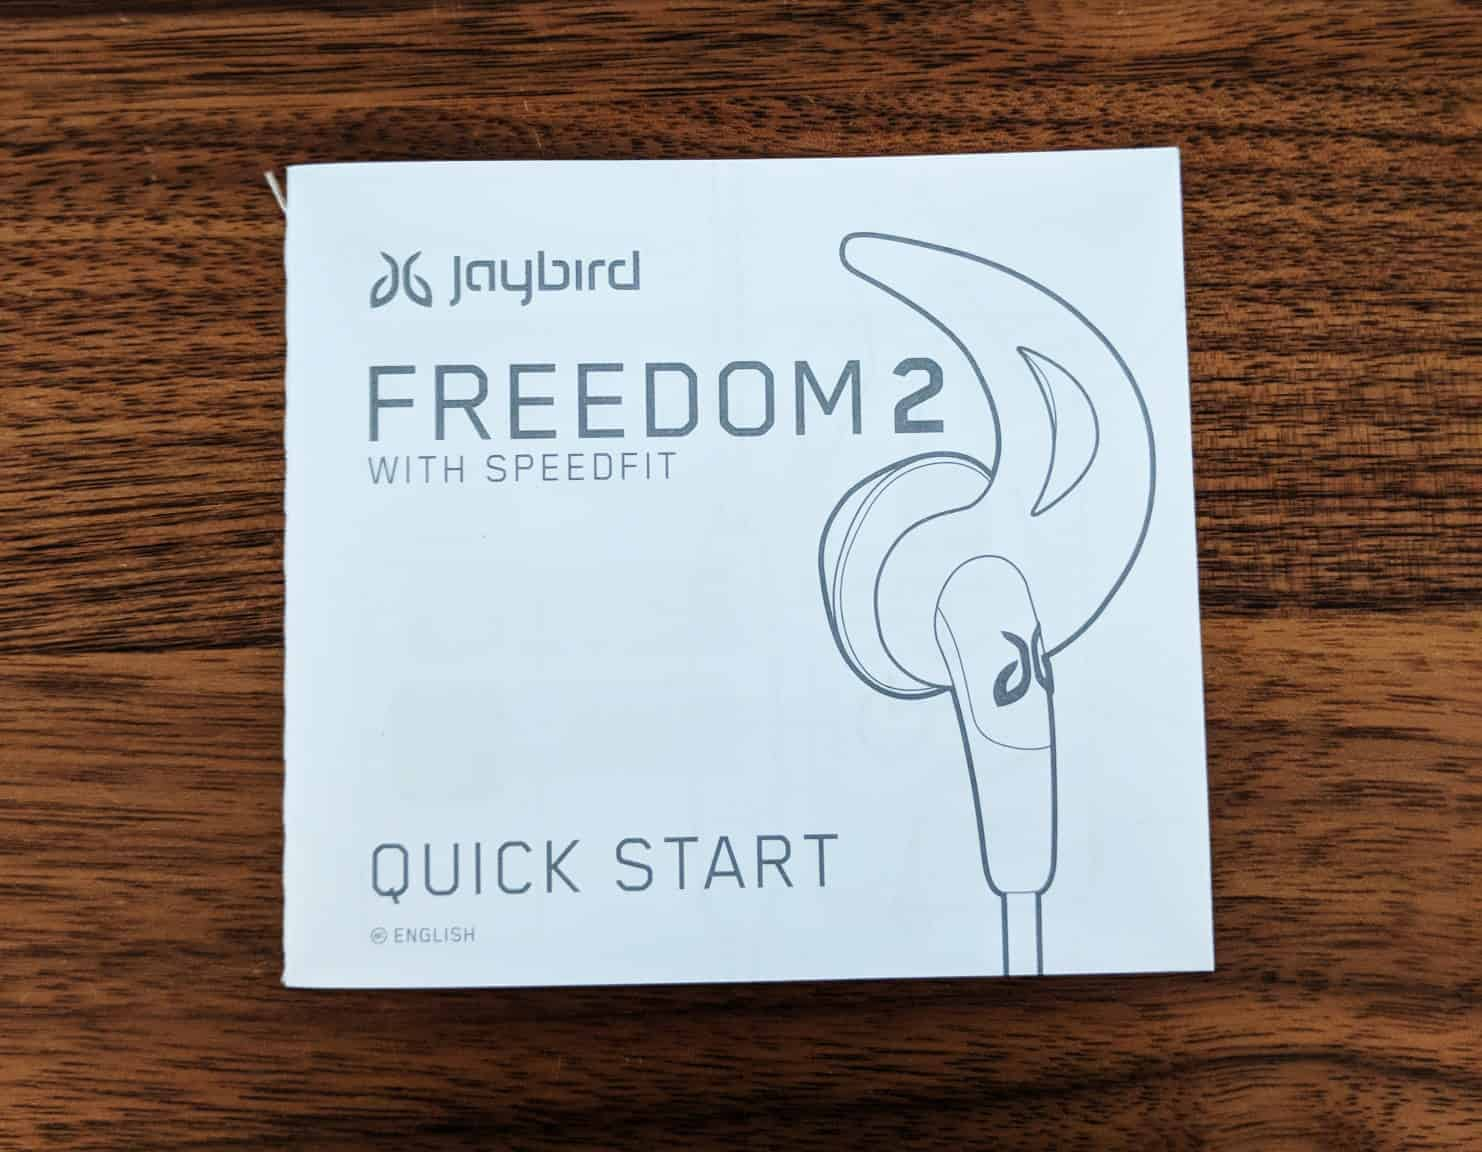 Jaybird-Freedom21 Jaybird Freedom 2 Review